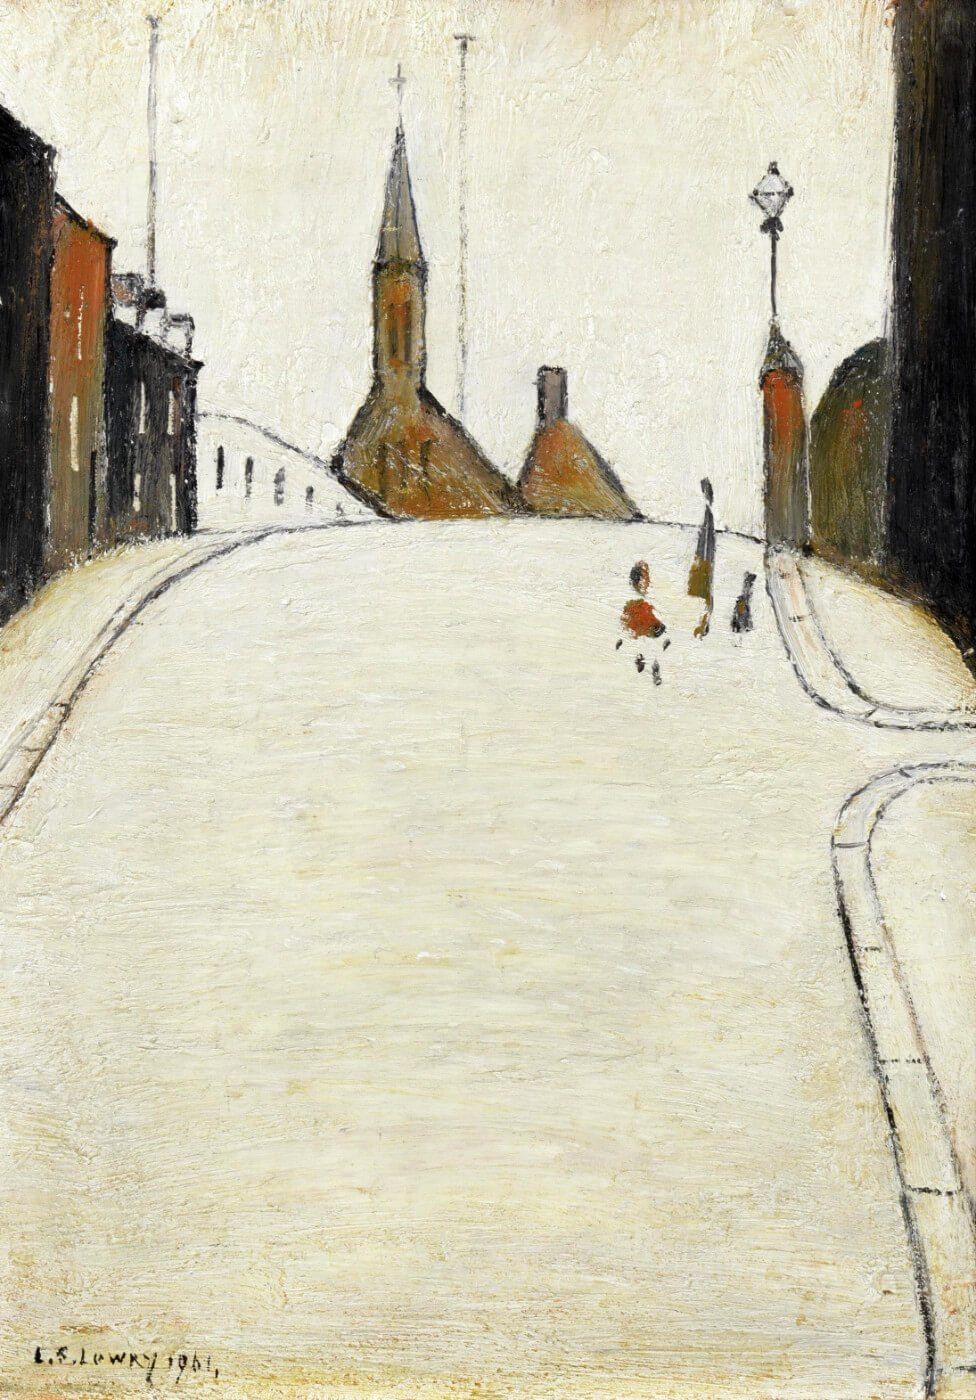 Framed L.S Lowry A Fight Giclee Canvas Print Paintings Poster Reproduction